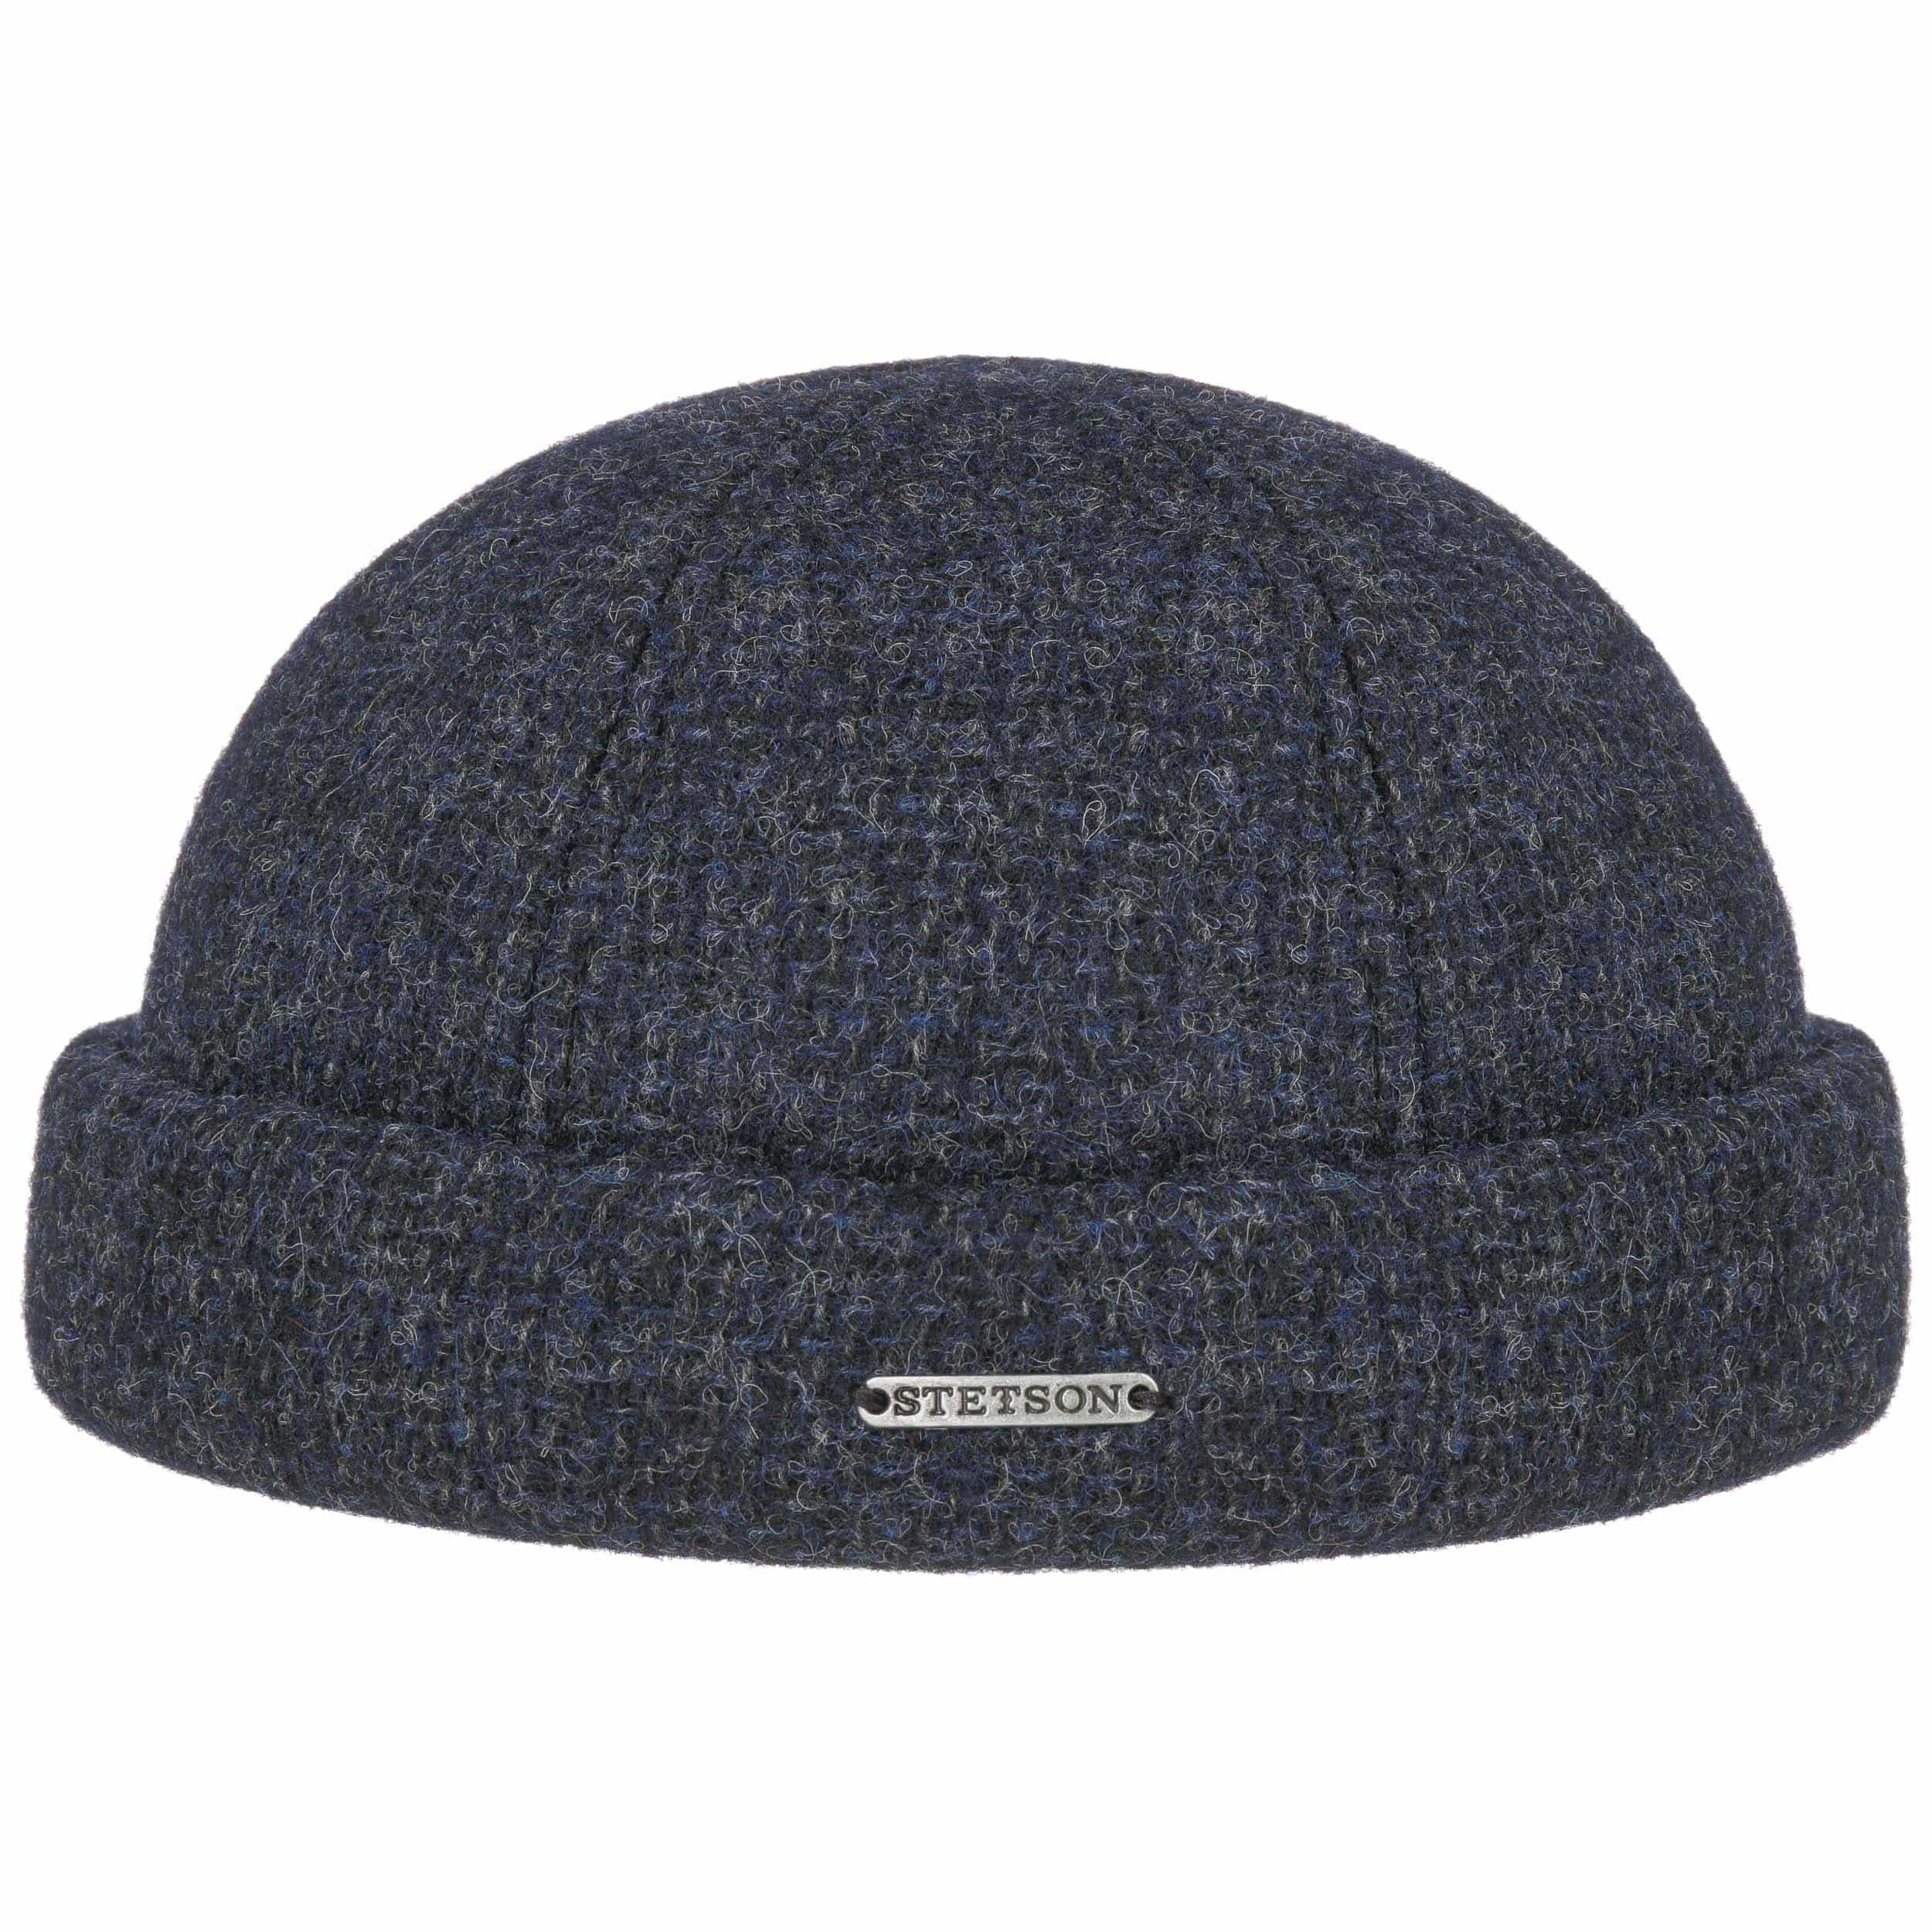 Castleton Wool Docker Hat navy